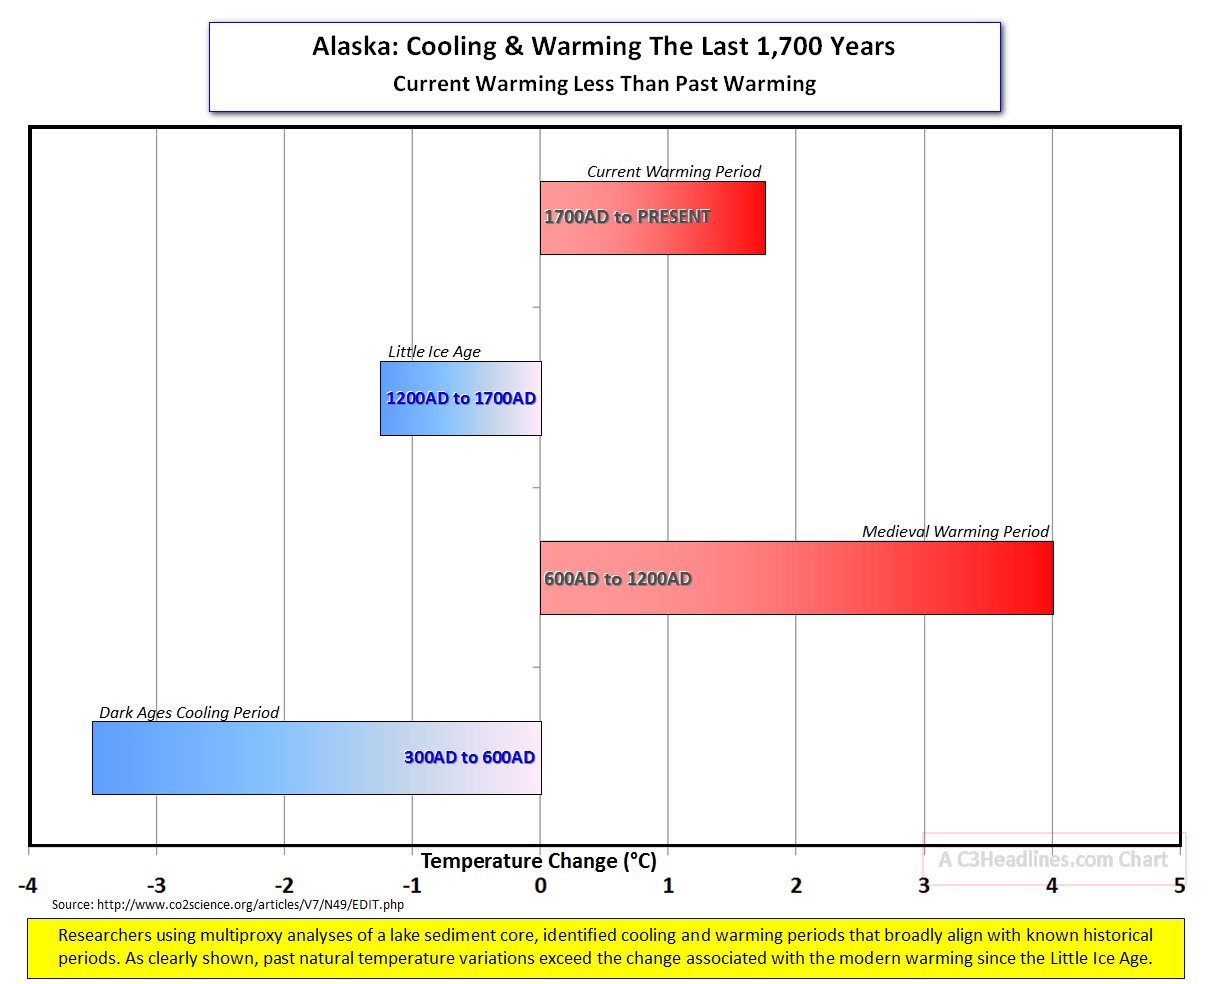 Alaska 2000 year cooling warming